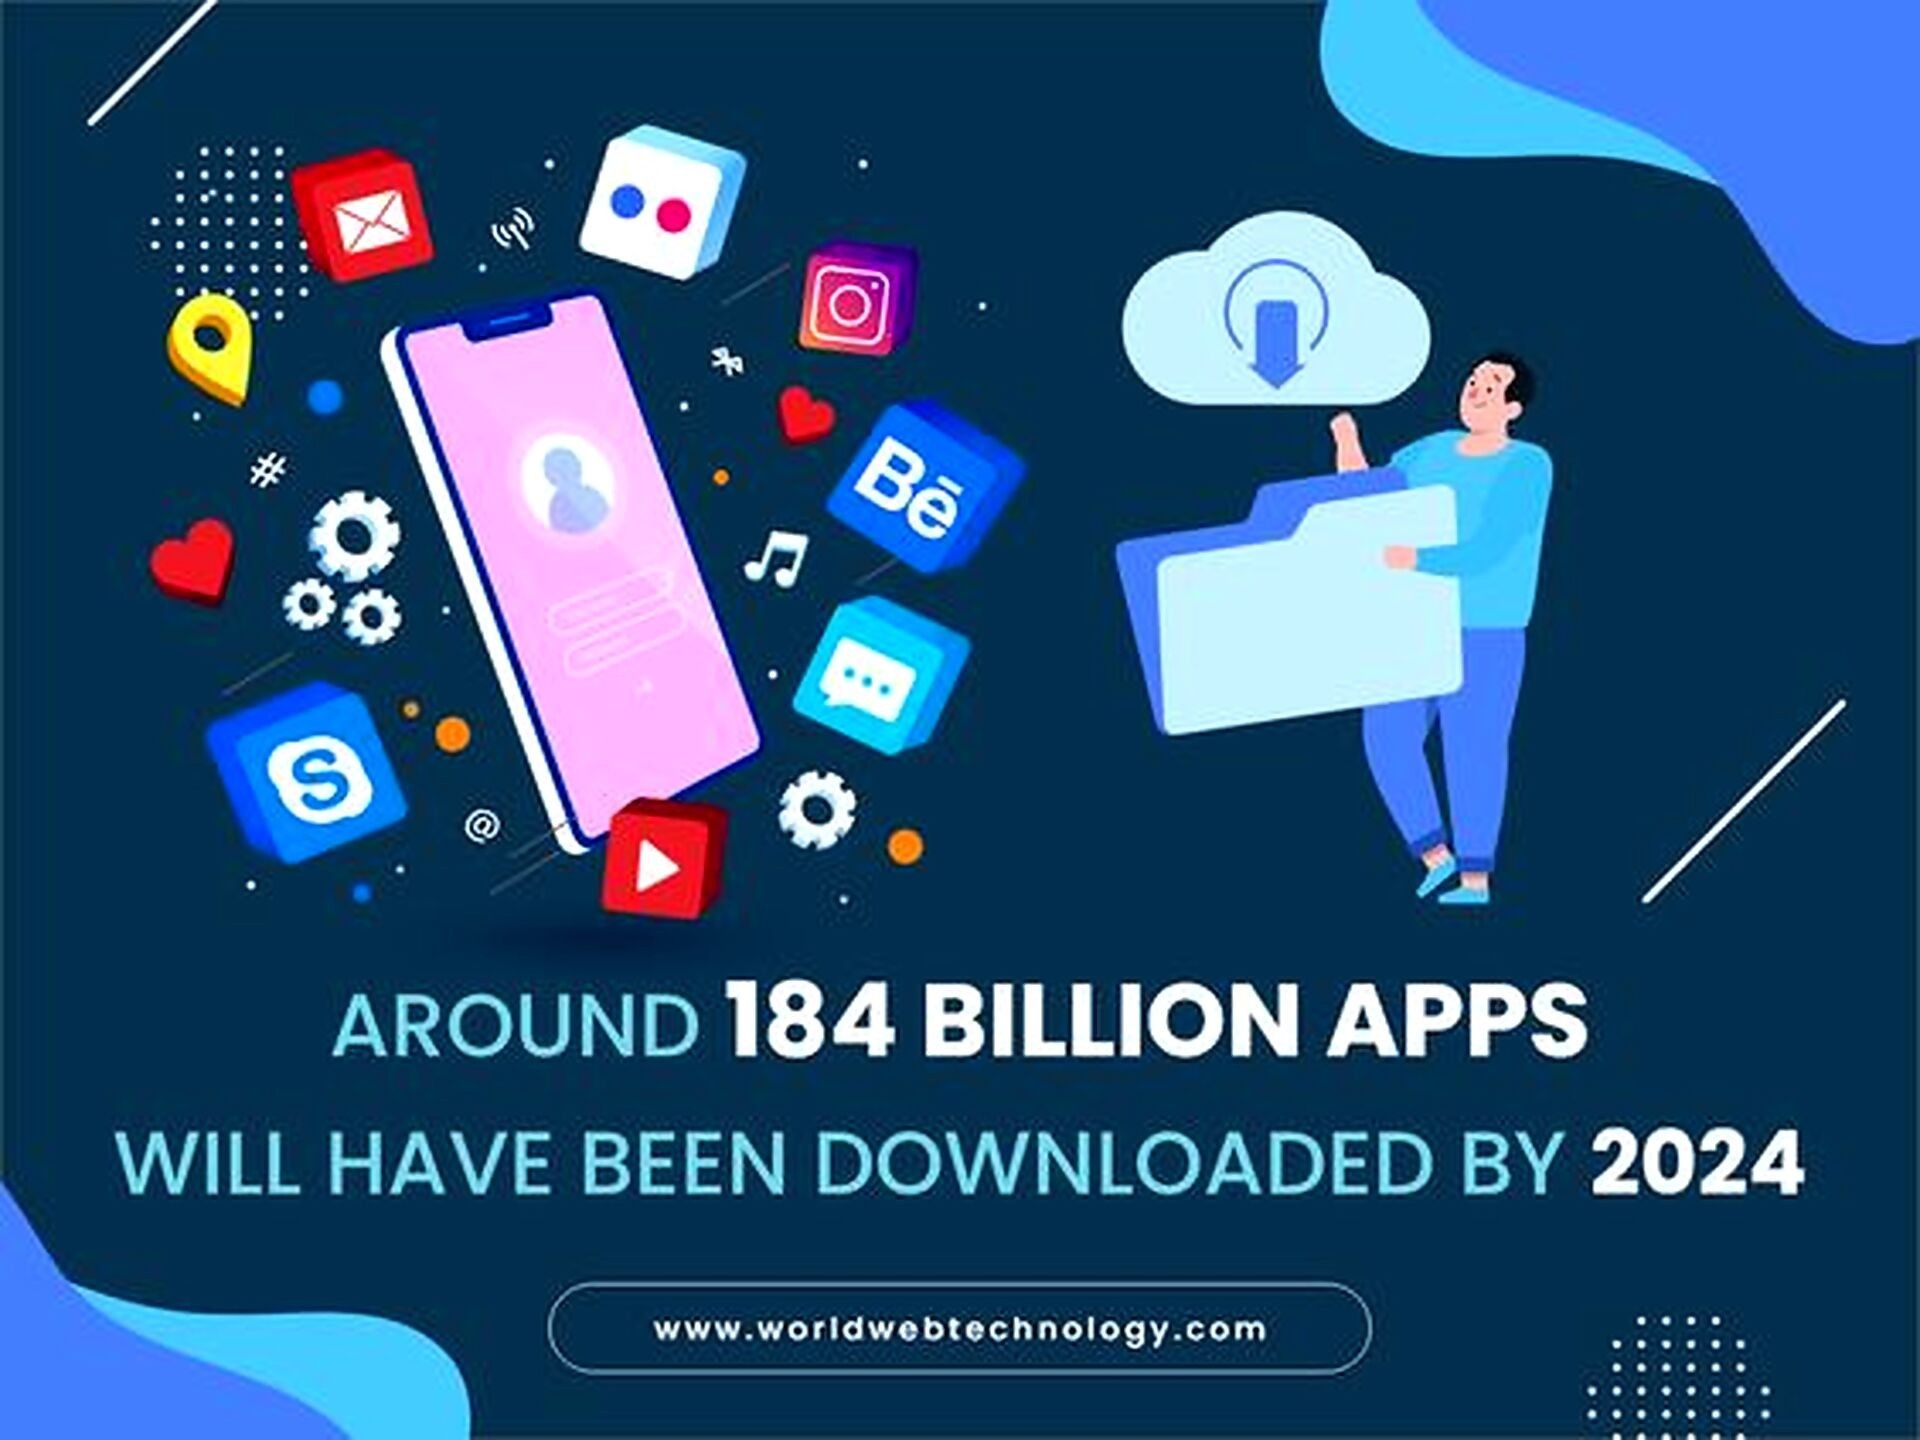 Around 184 billion apps will have been downloaded by 2024